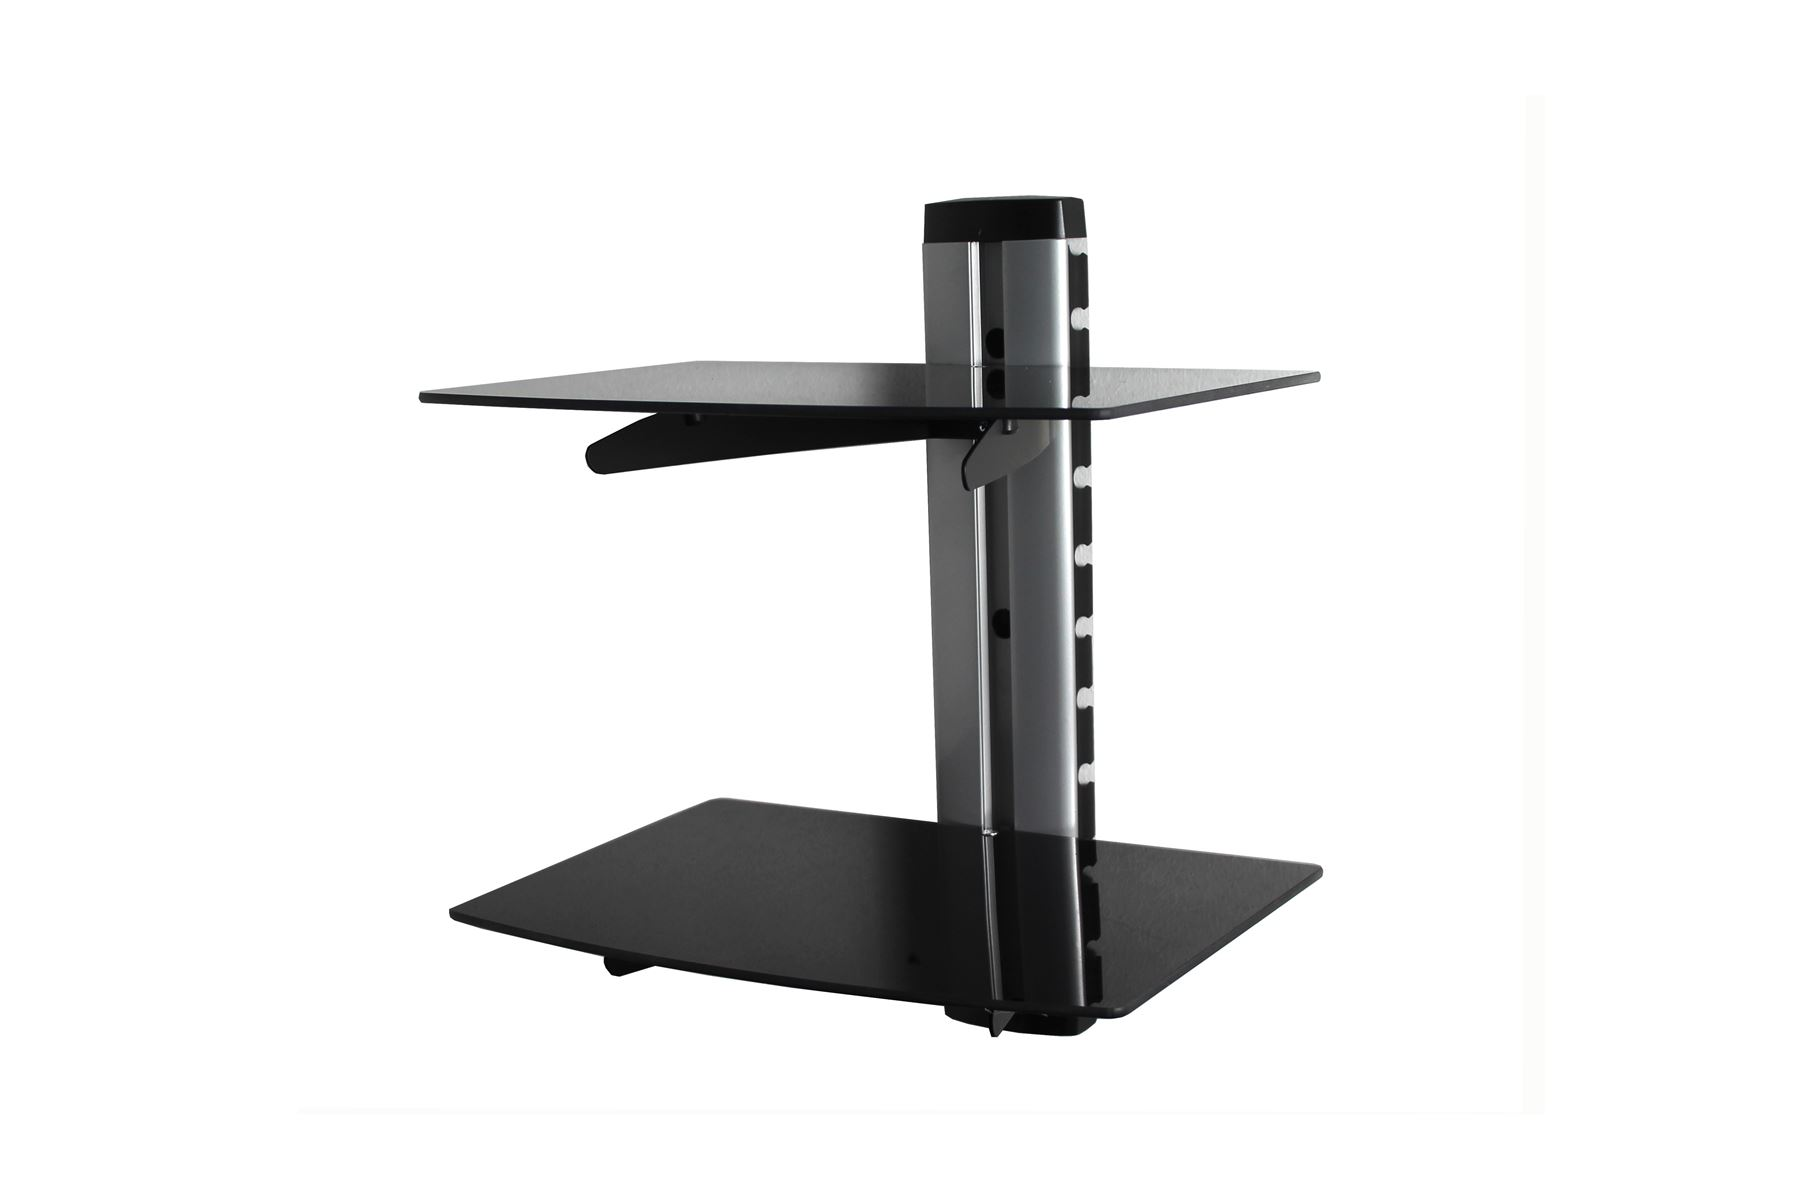 double tier floating glass shelves for dvd sky box wall mount details about bracket laying vinyl floor tiles over existing inch deep shelf insert triangle corner kitchen food